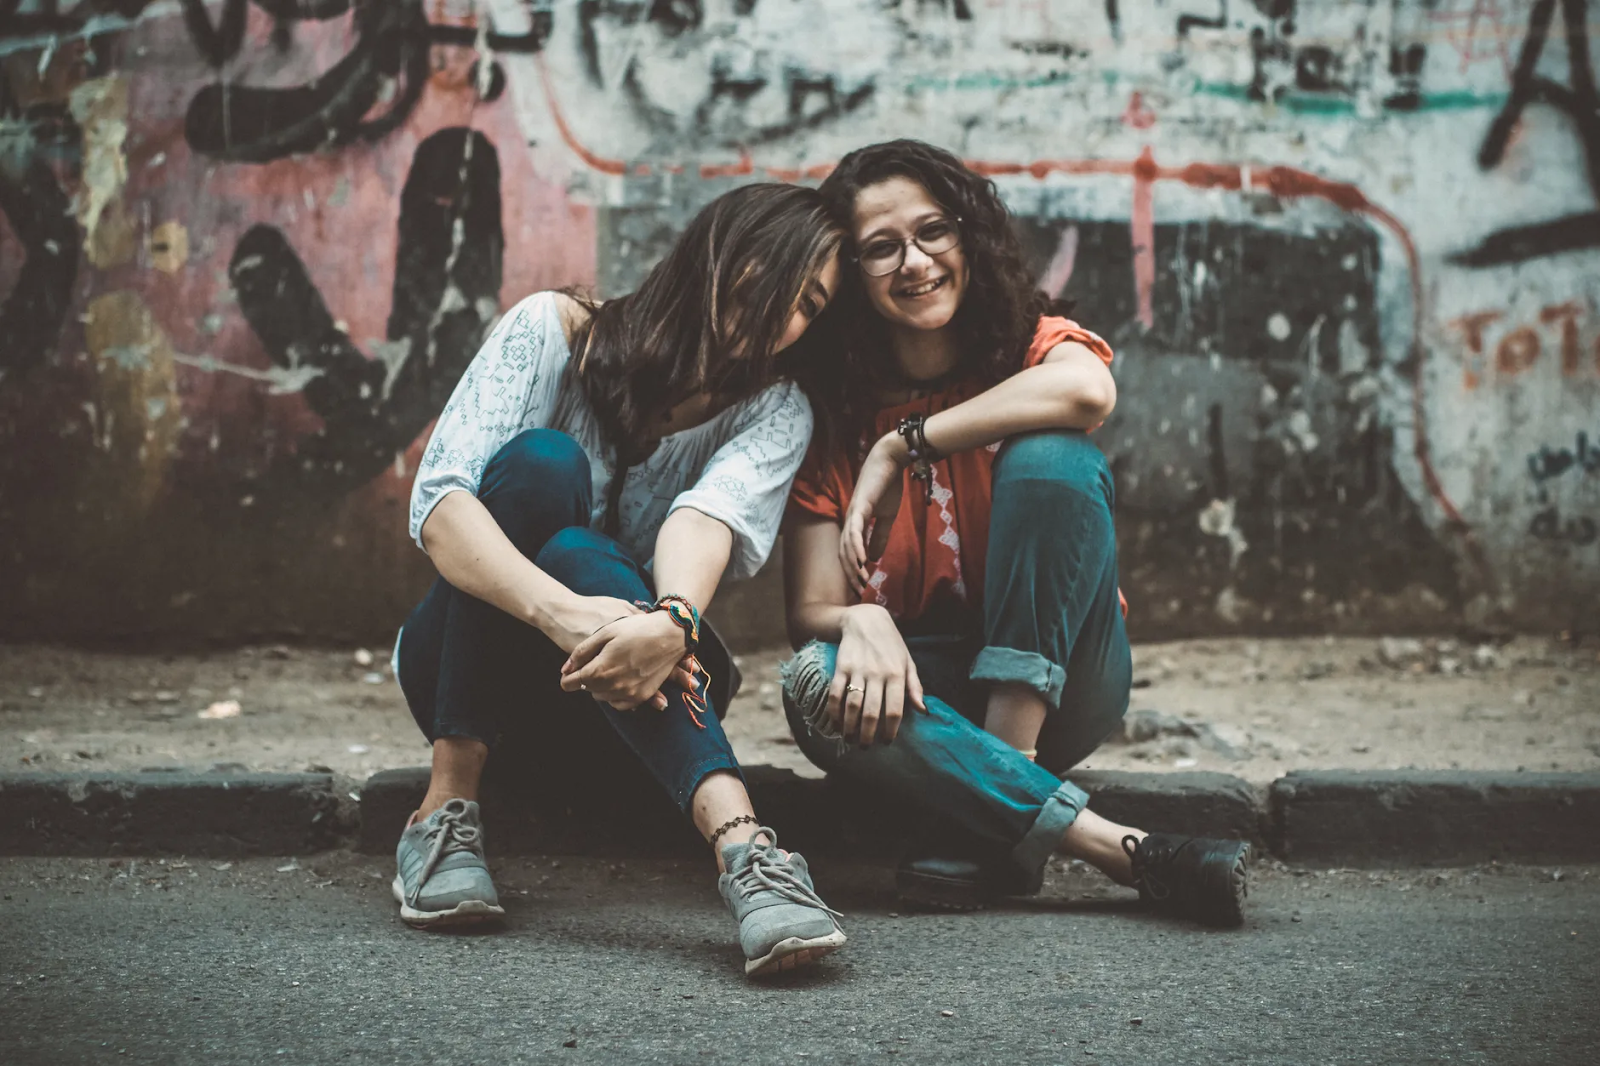 Two woman sit on a curb together in front of a graffiti-covered wall, leaning on each other and laughing